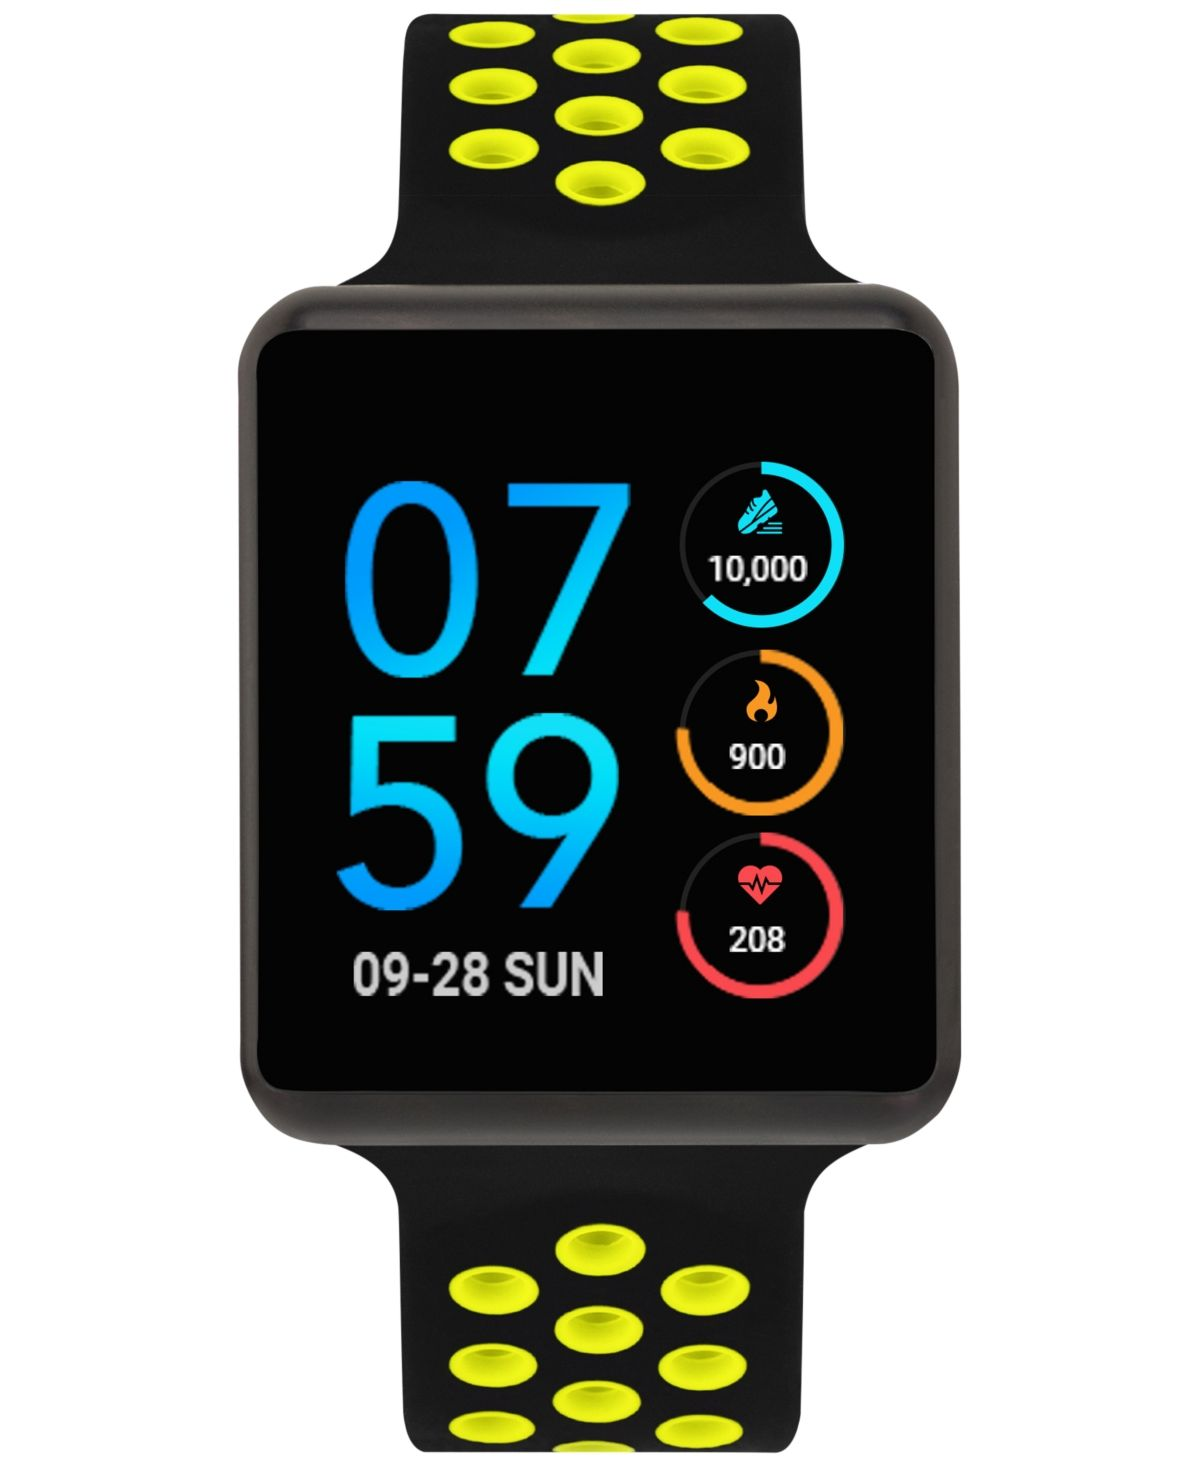 Vibrant yellow accents perforate the sleek black design of iTouch's sophisticated Gps and heart rate equipped touchscreen smart watch from the special edition Air collection. Style #ITA42105U75C-339